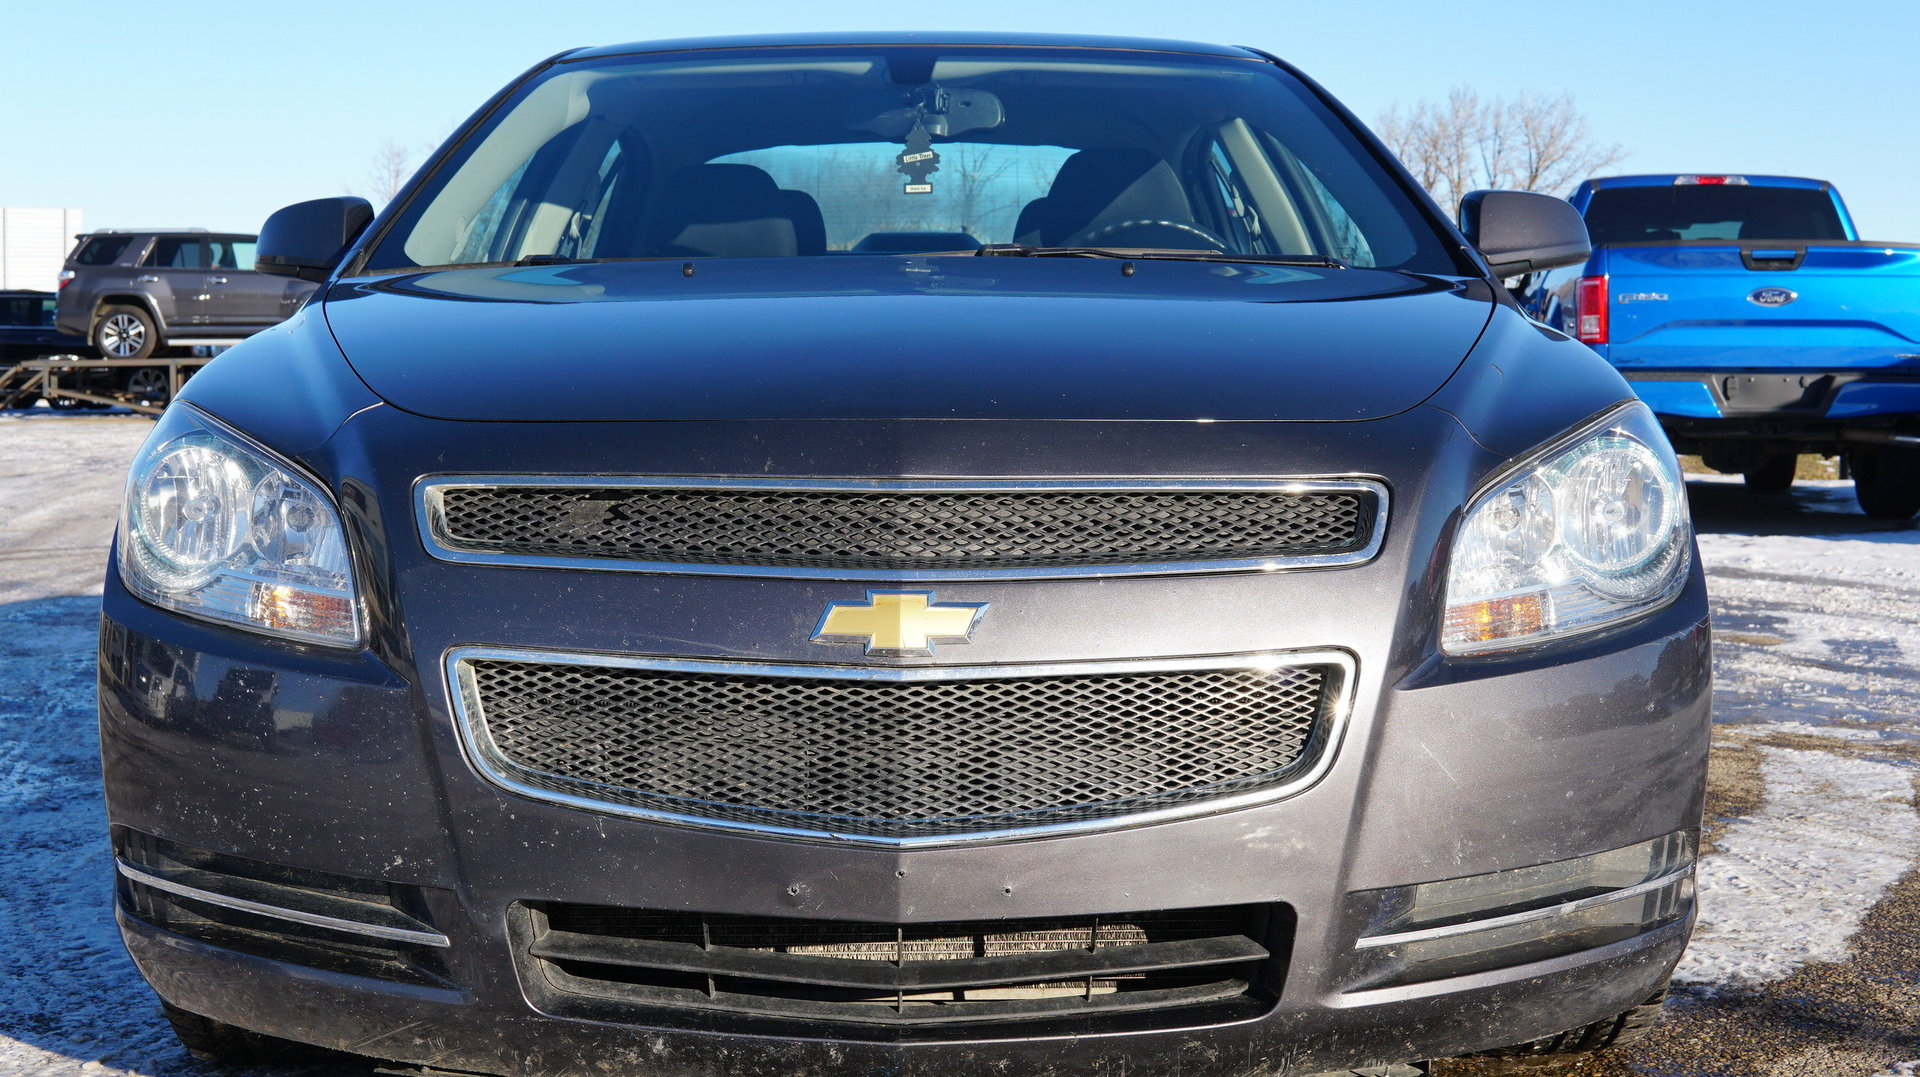 2012 Chevrolet Malibu Lt W 1lt 4 Door Sedan For Sale